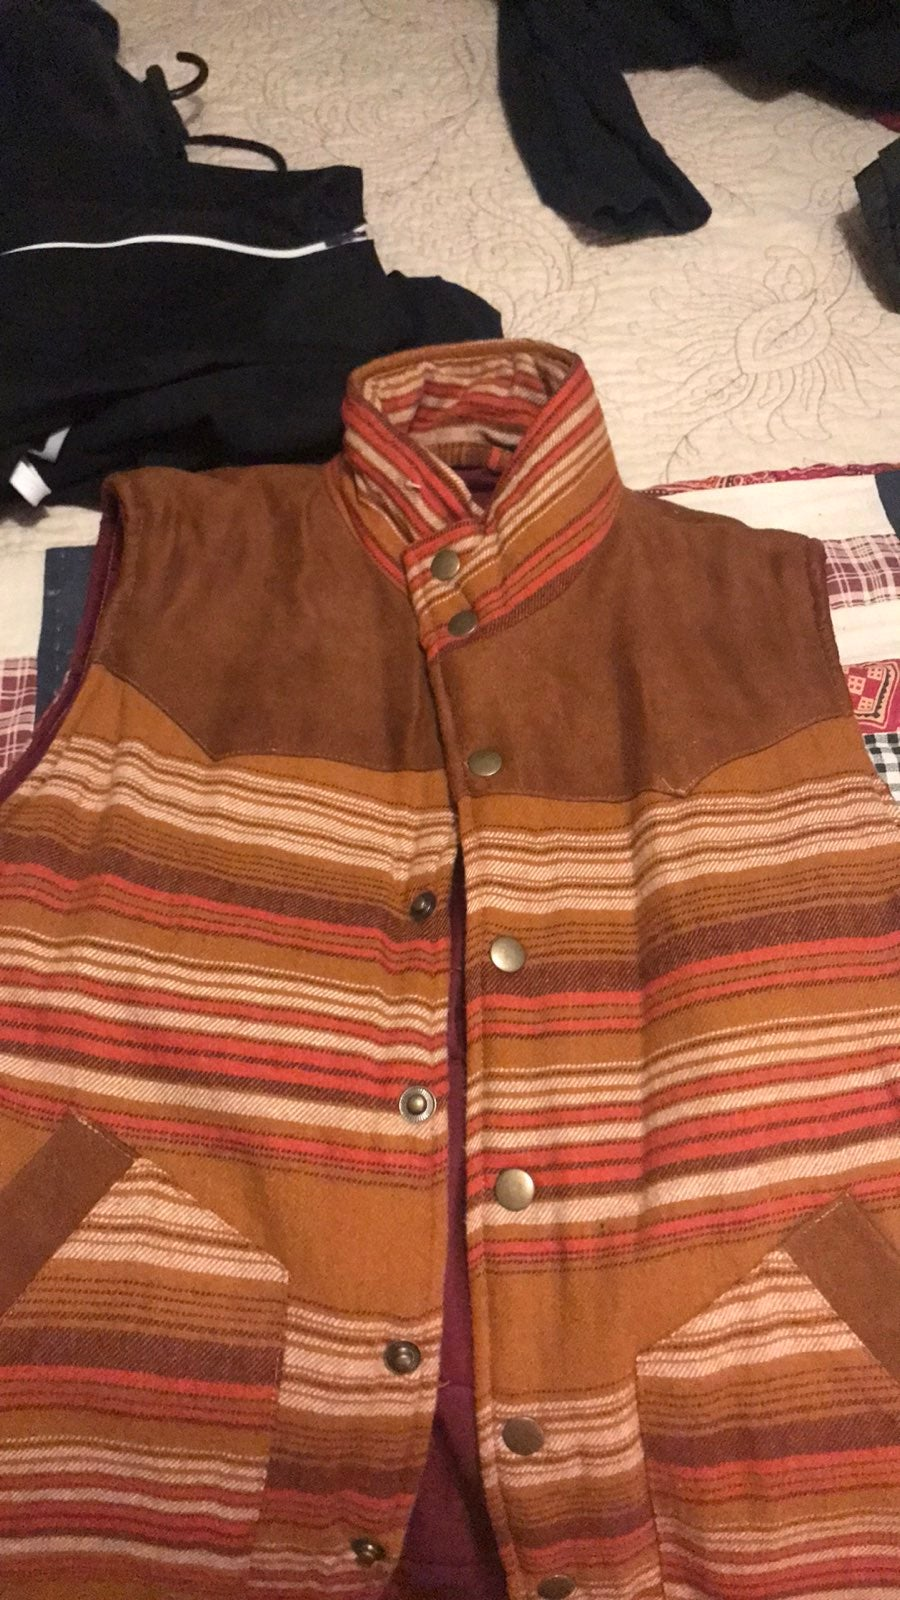 Earth bound vest